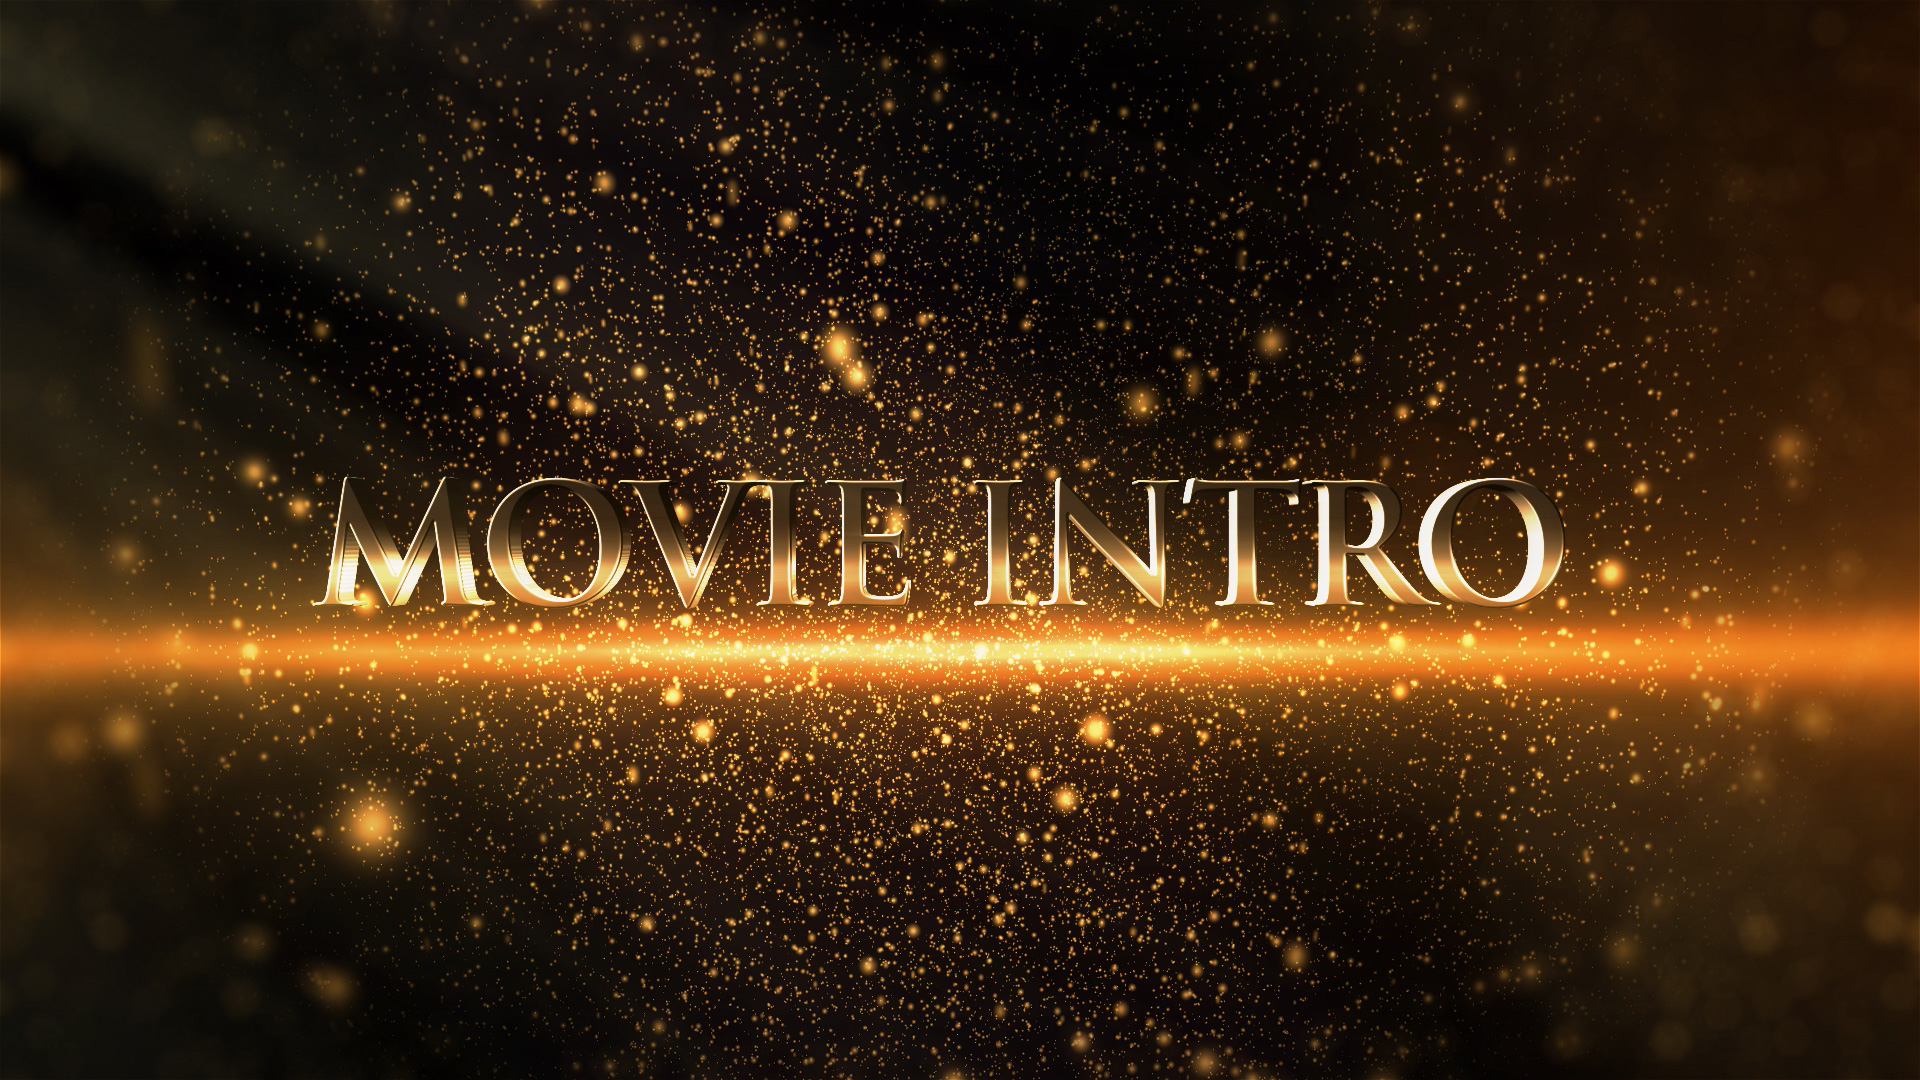 Movie intro cinematic after effects opener template an error occurred pronofoot35fo Choice Image